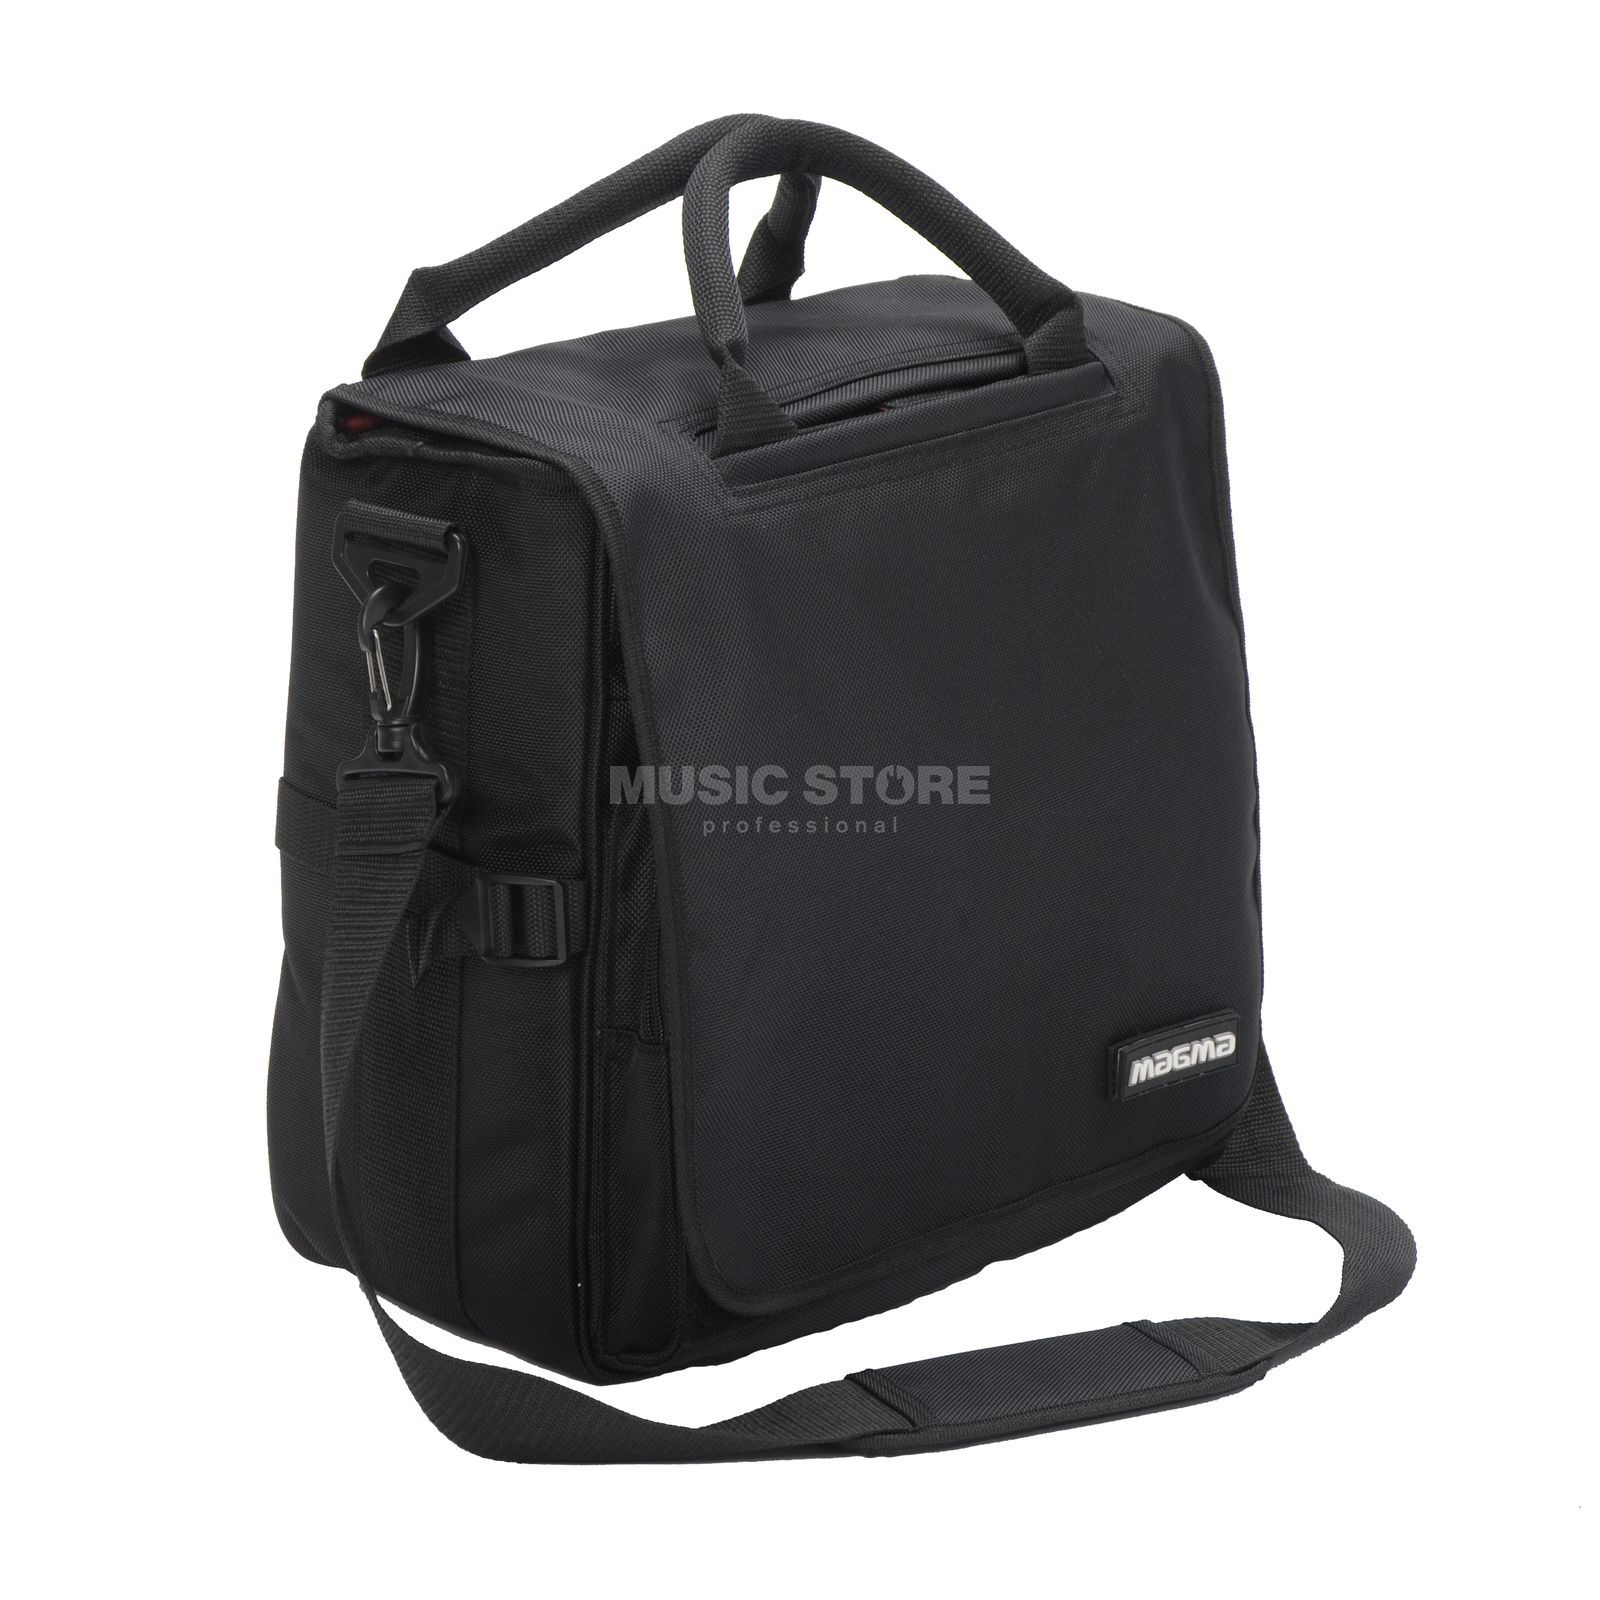 Magma LP Bag 40 Black DJ LP Bag for 80 Vinyls, Pad Zdjęcie produktu